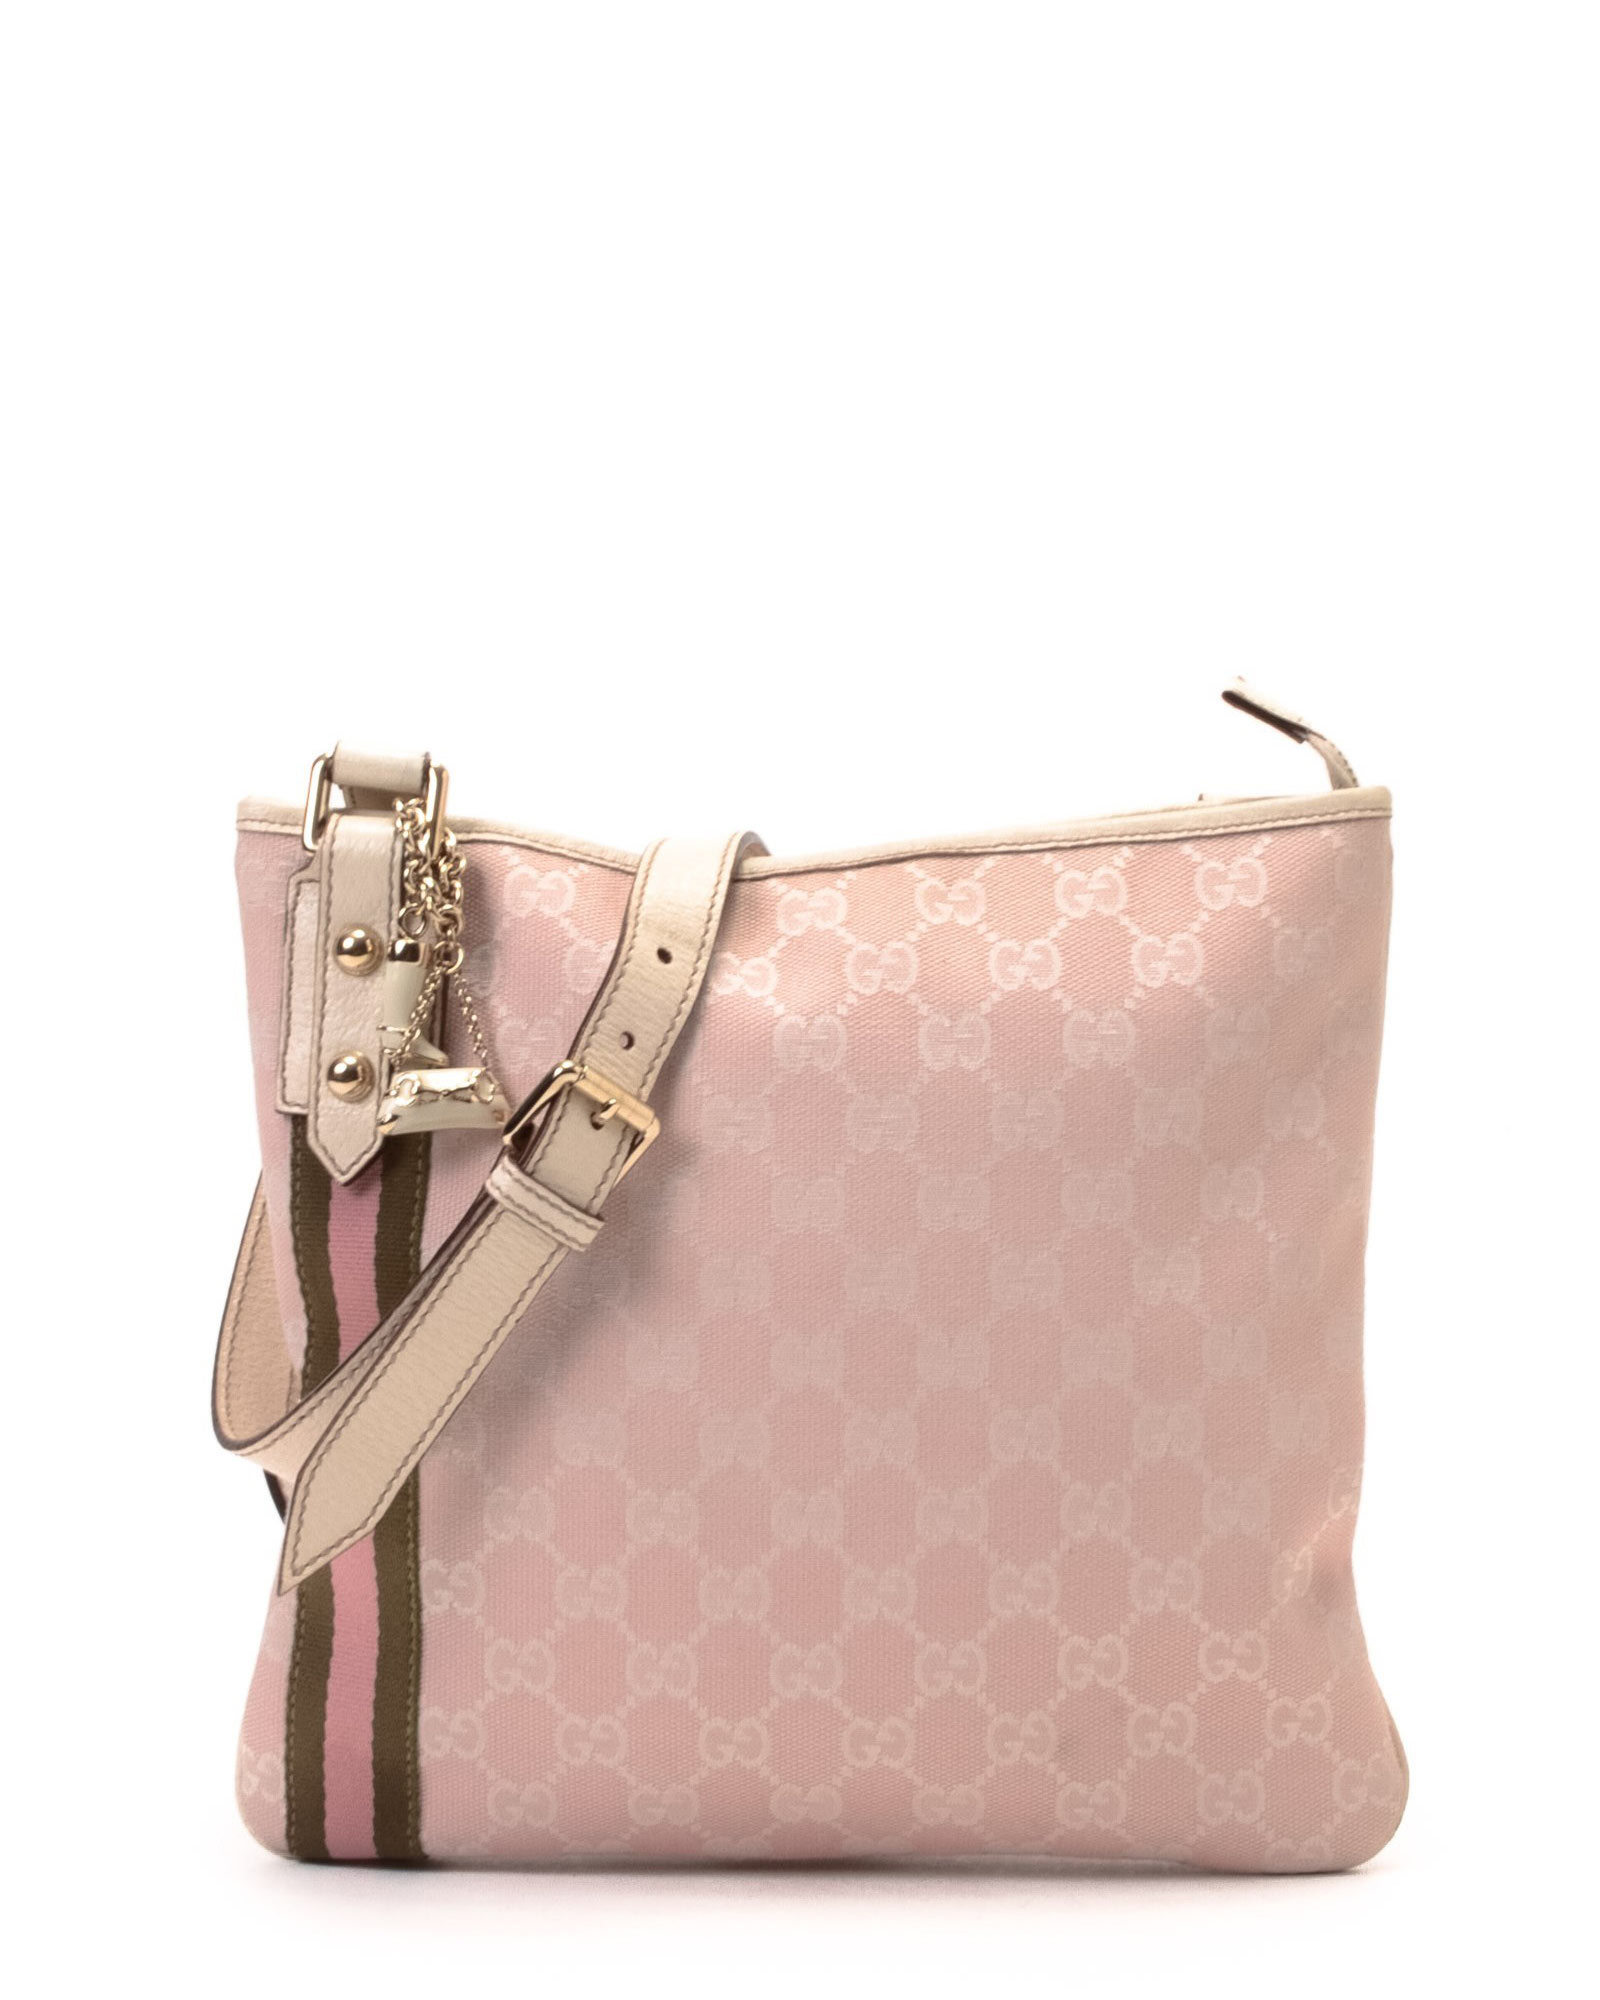 d4f4b5552ea0 Lyst - Gucci Pink Messenger Bag in Pink